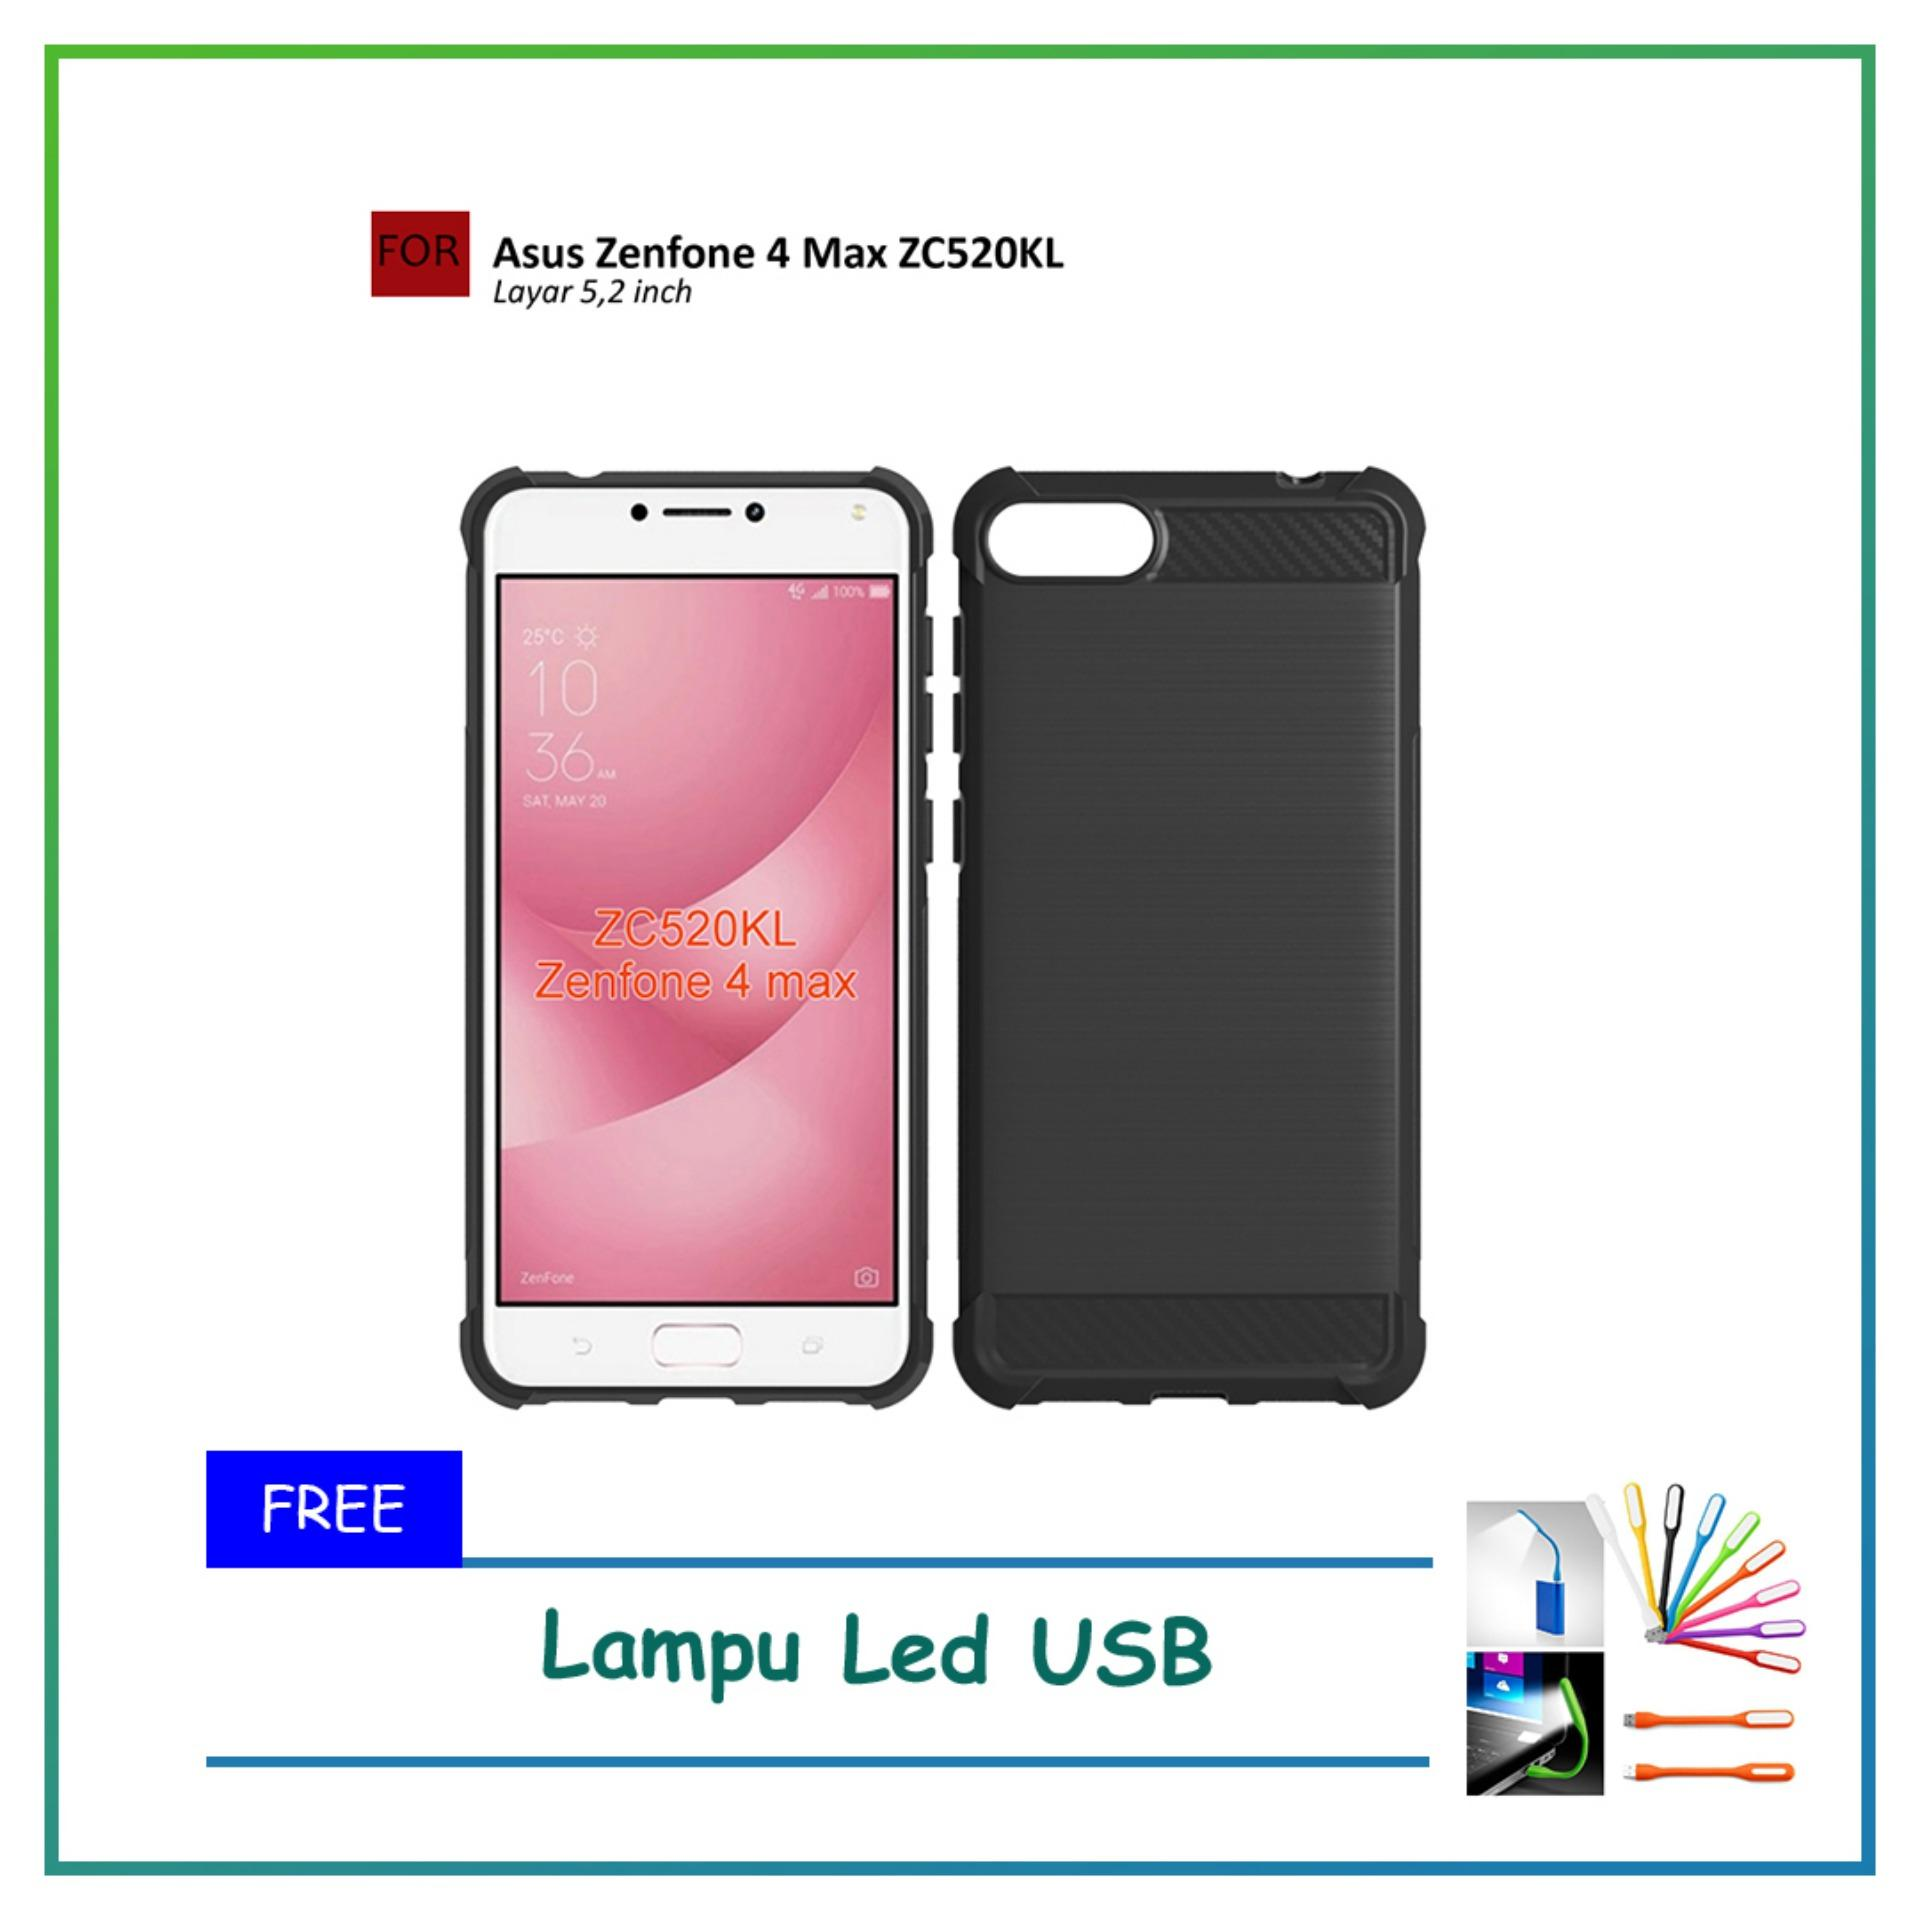 Renzanaacc Brushed Corner Protection Cushion Premium Carbon Shockproof TPU Case For ASUS Zenfone 4